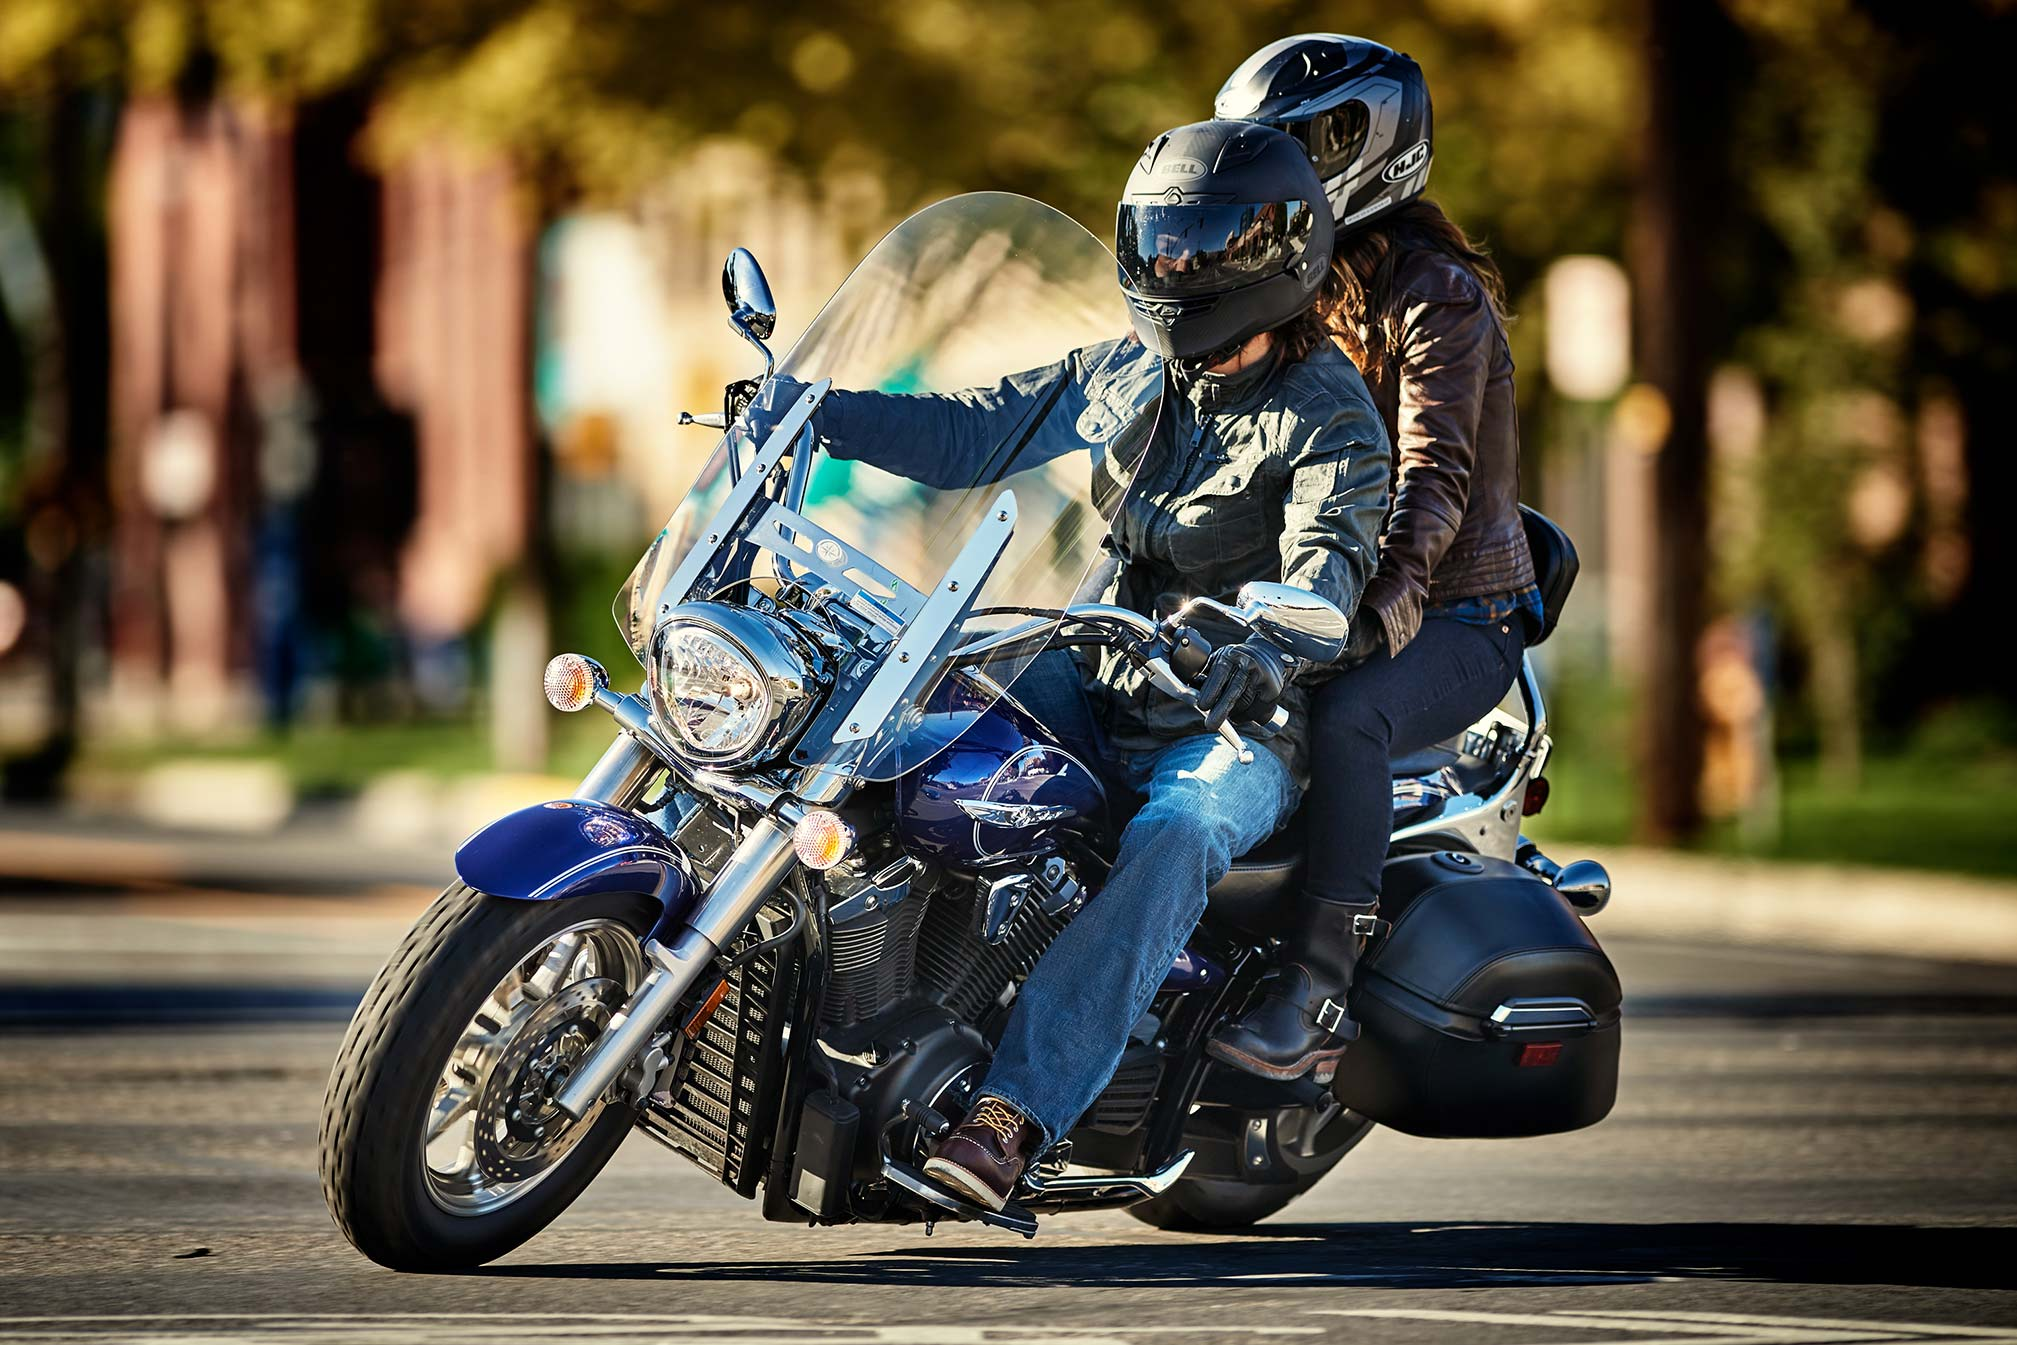 Yamaha V Star Review